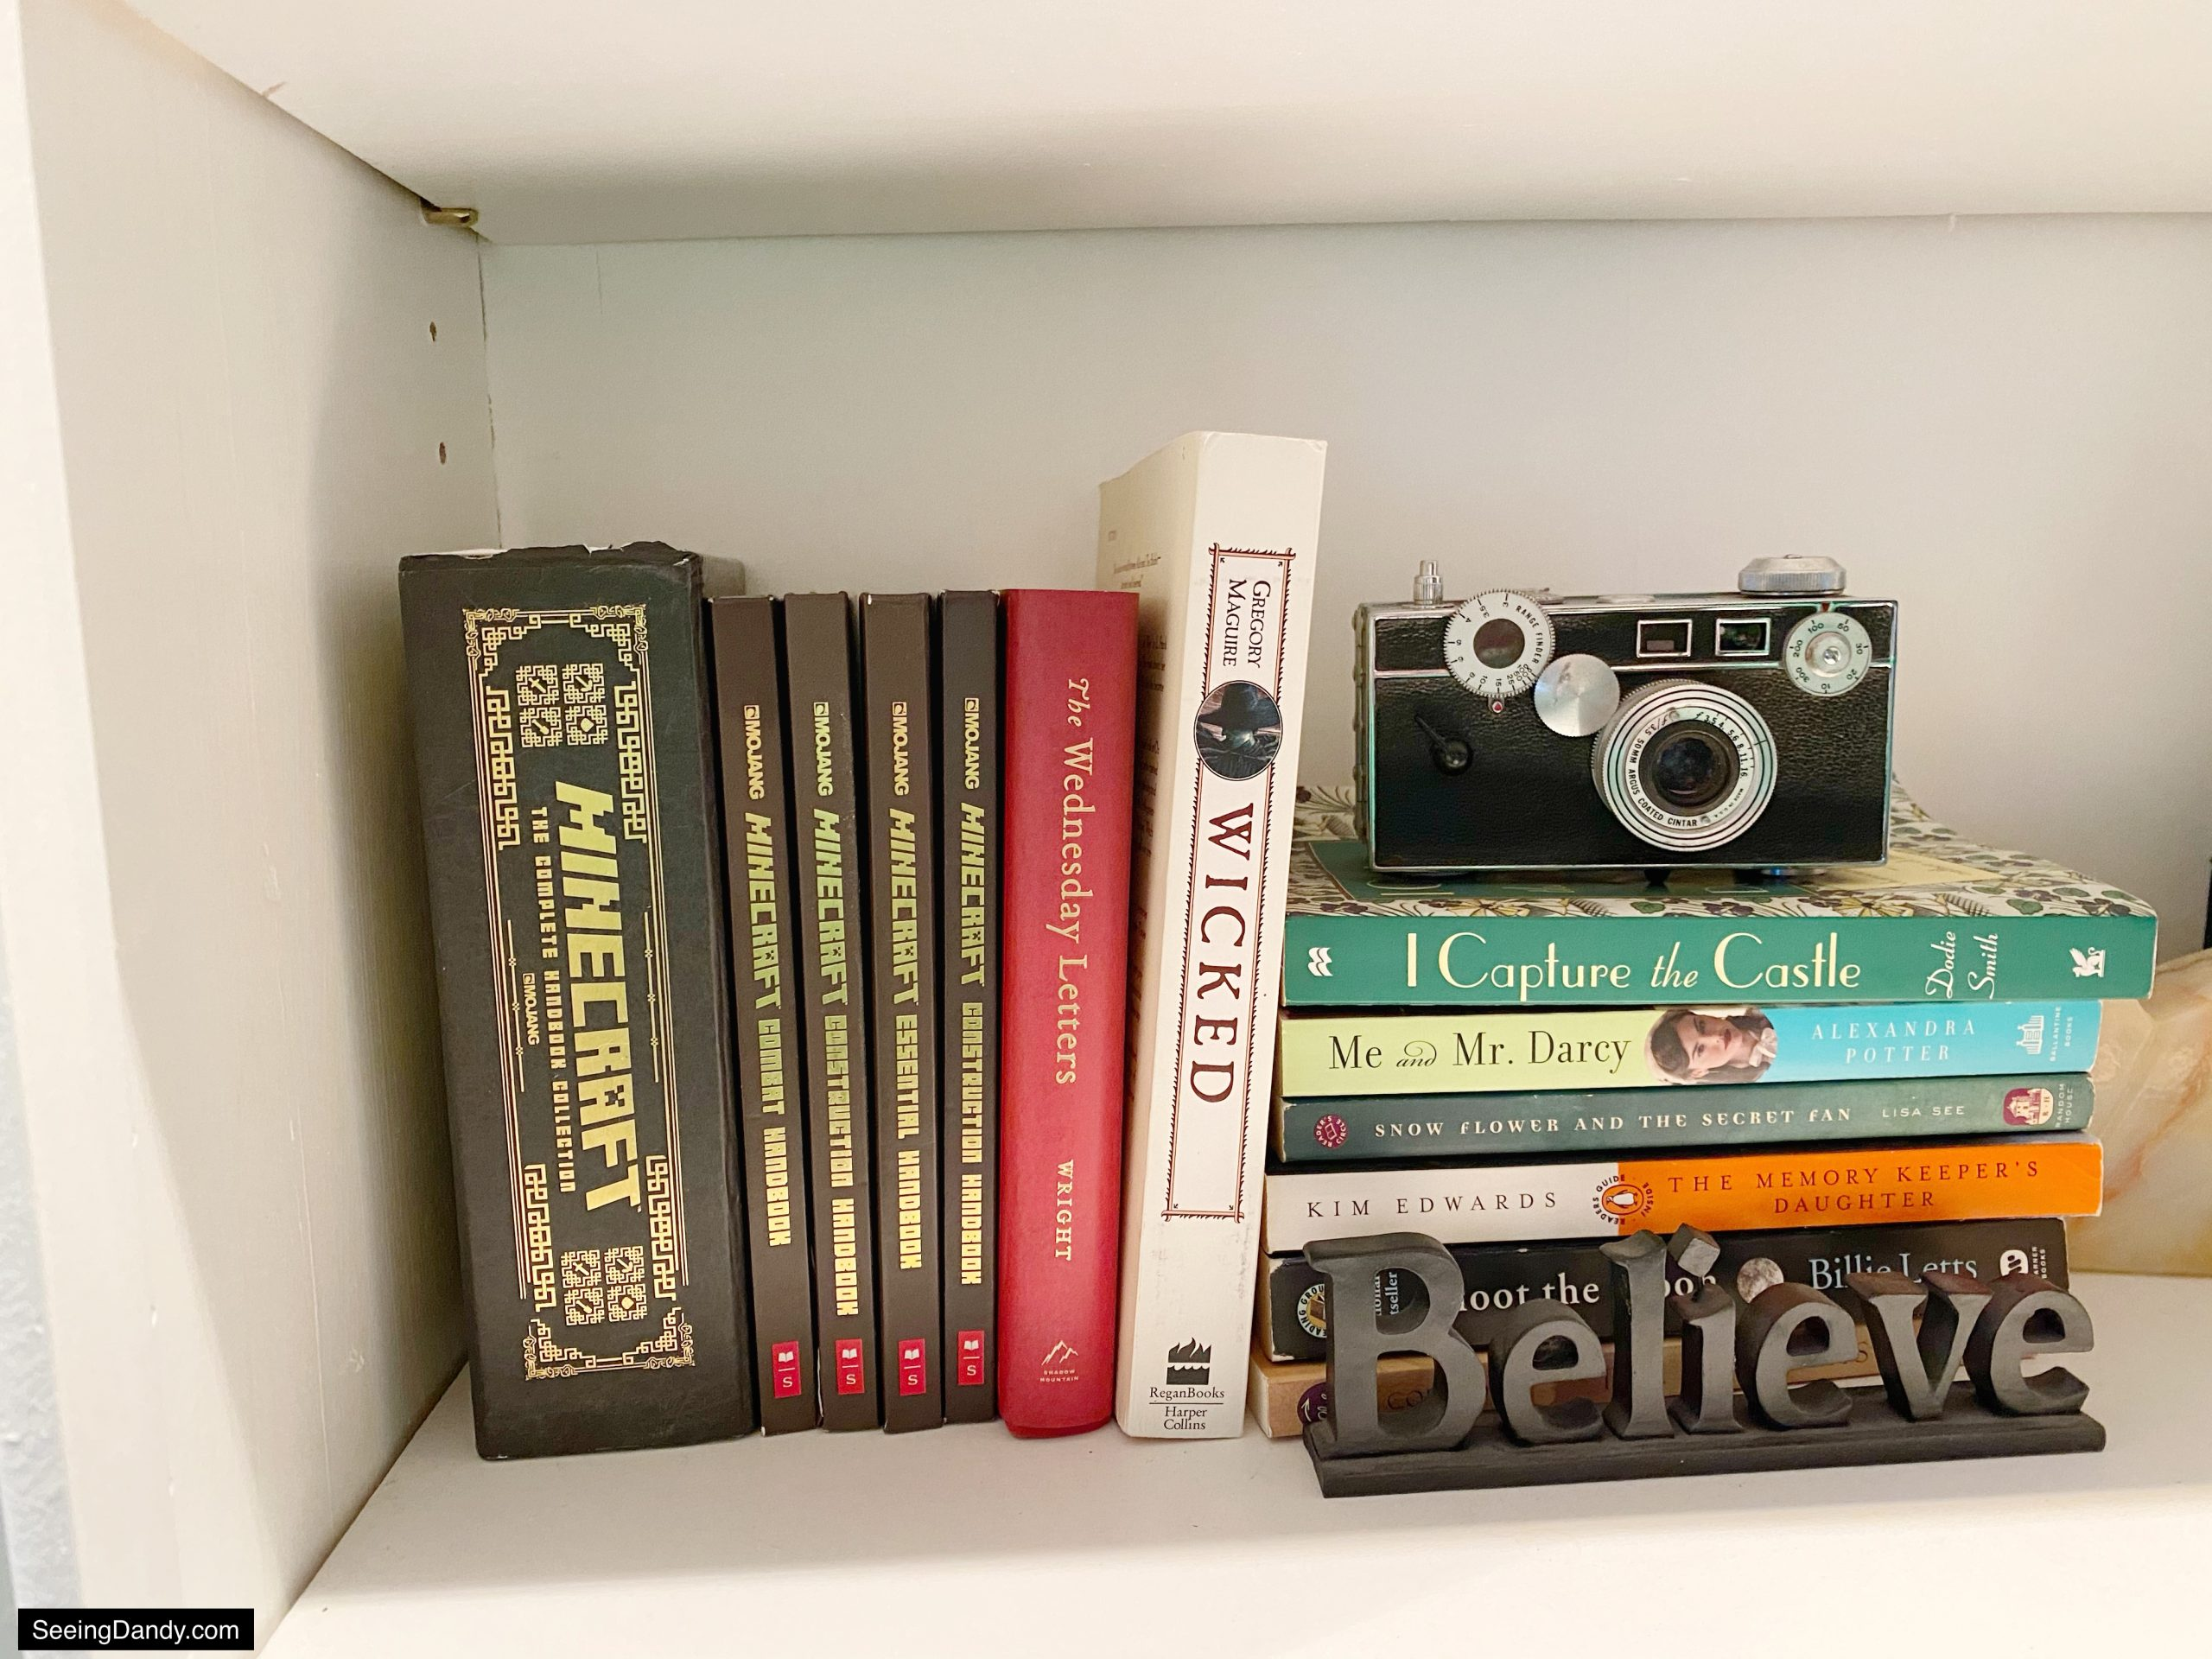 antique camera, i capture the castle, me and mr darcy, wicked book, minecraft official mojang handbook set, minecraft construction handbook, minecraft redstone handbook, minecraft books, minecraft handbooks, minecraft essential handbook, minecraft combat handbook, the wednesday letters